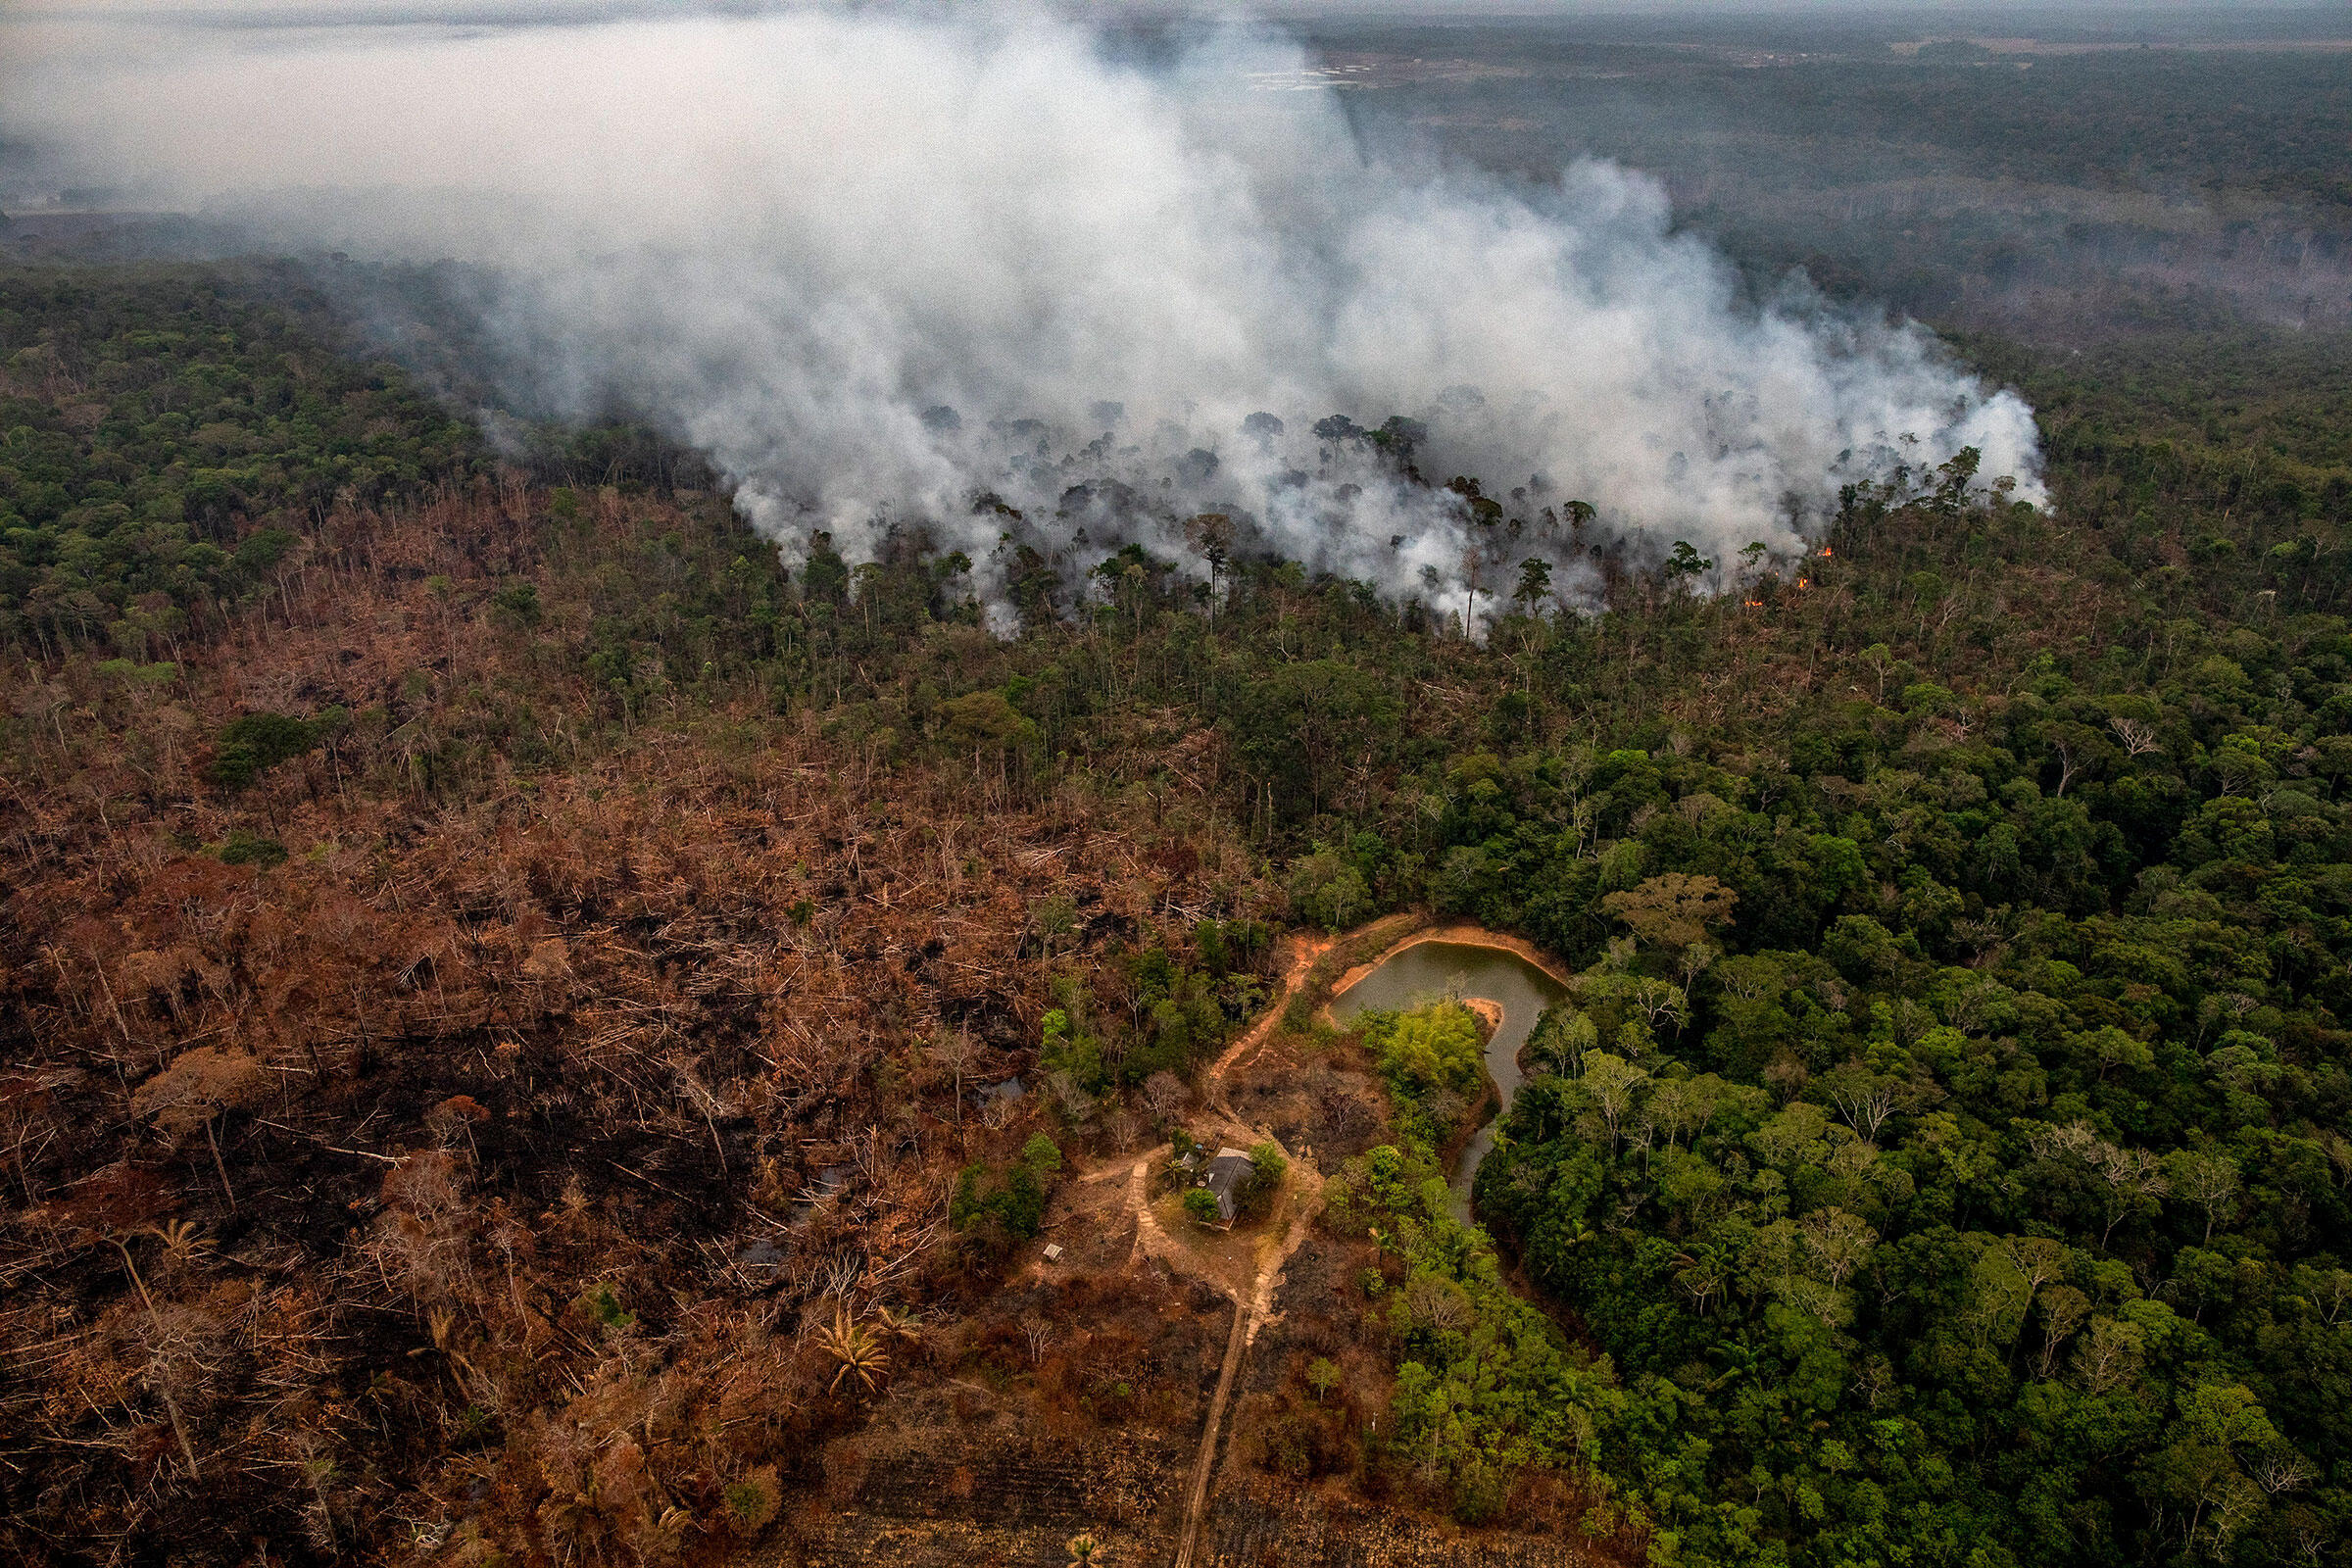 The Amazon's Blazing Fires Are Squeezing Habitat for